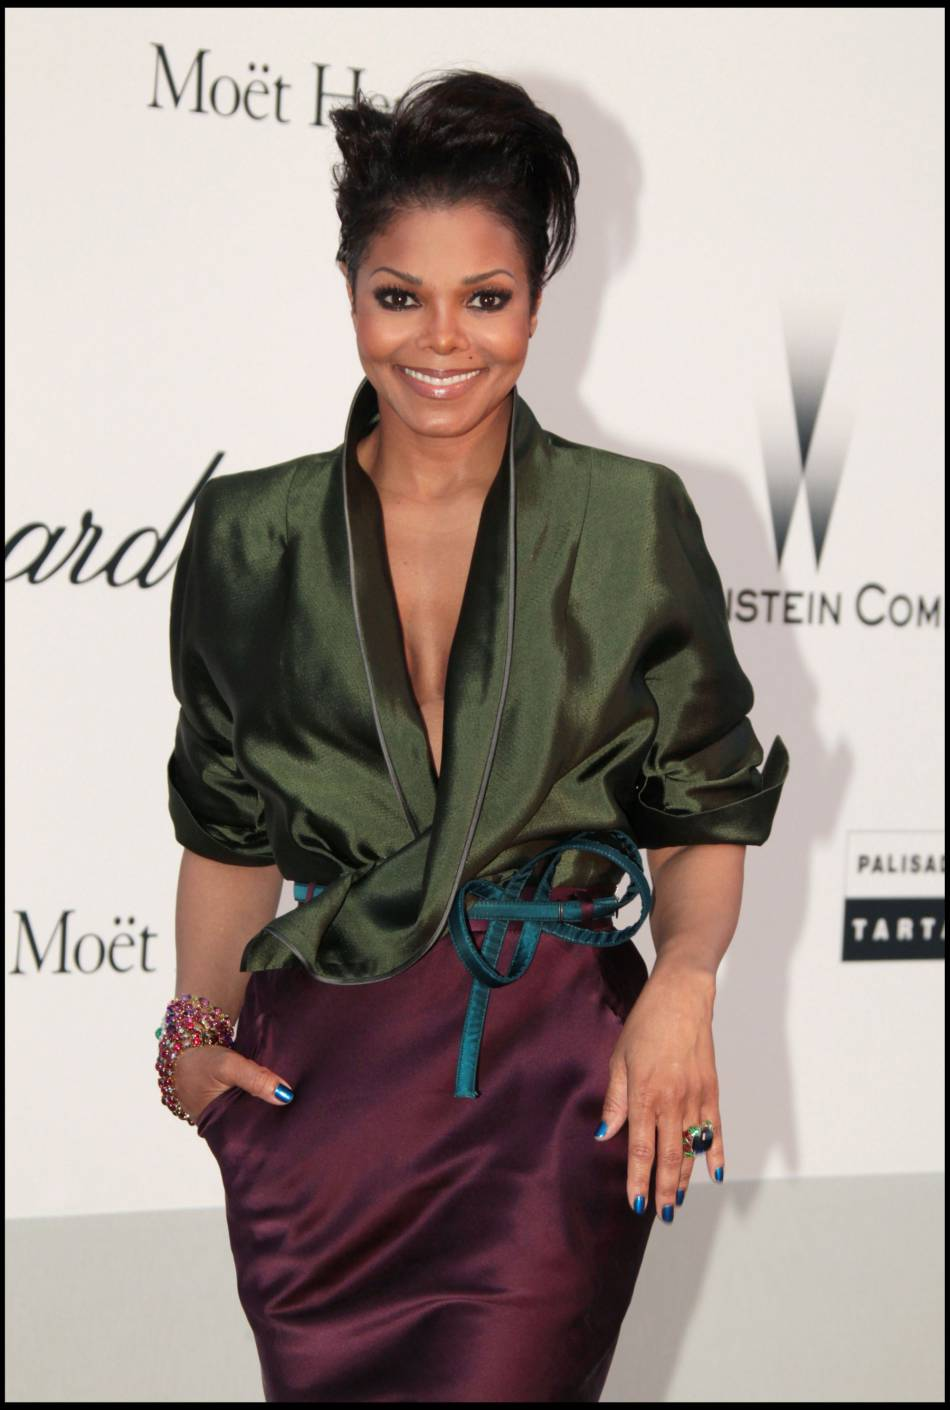 a bient t 50 ans janet jackson est enceinte pour la premi re fois. Black Bedroom Furniture Sets. Home Design Ideas